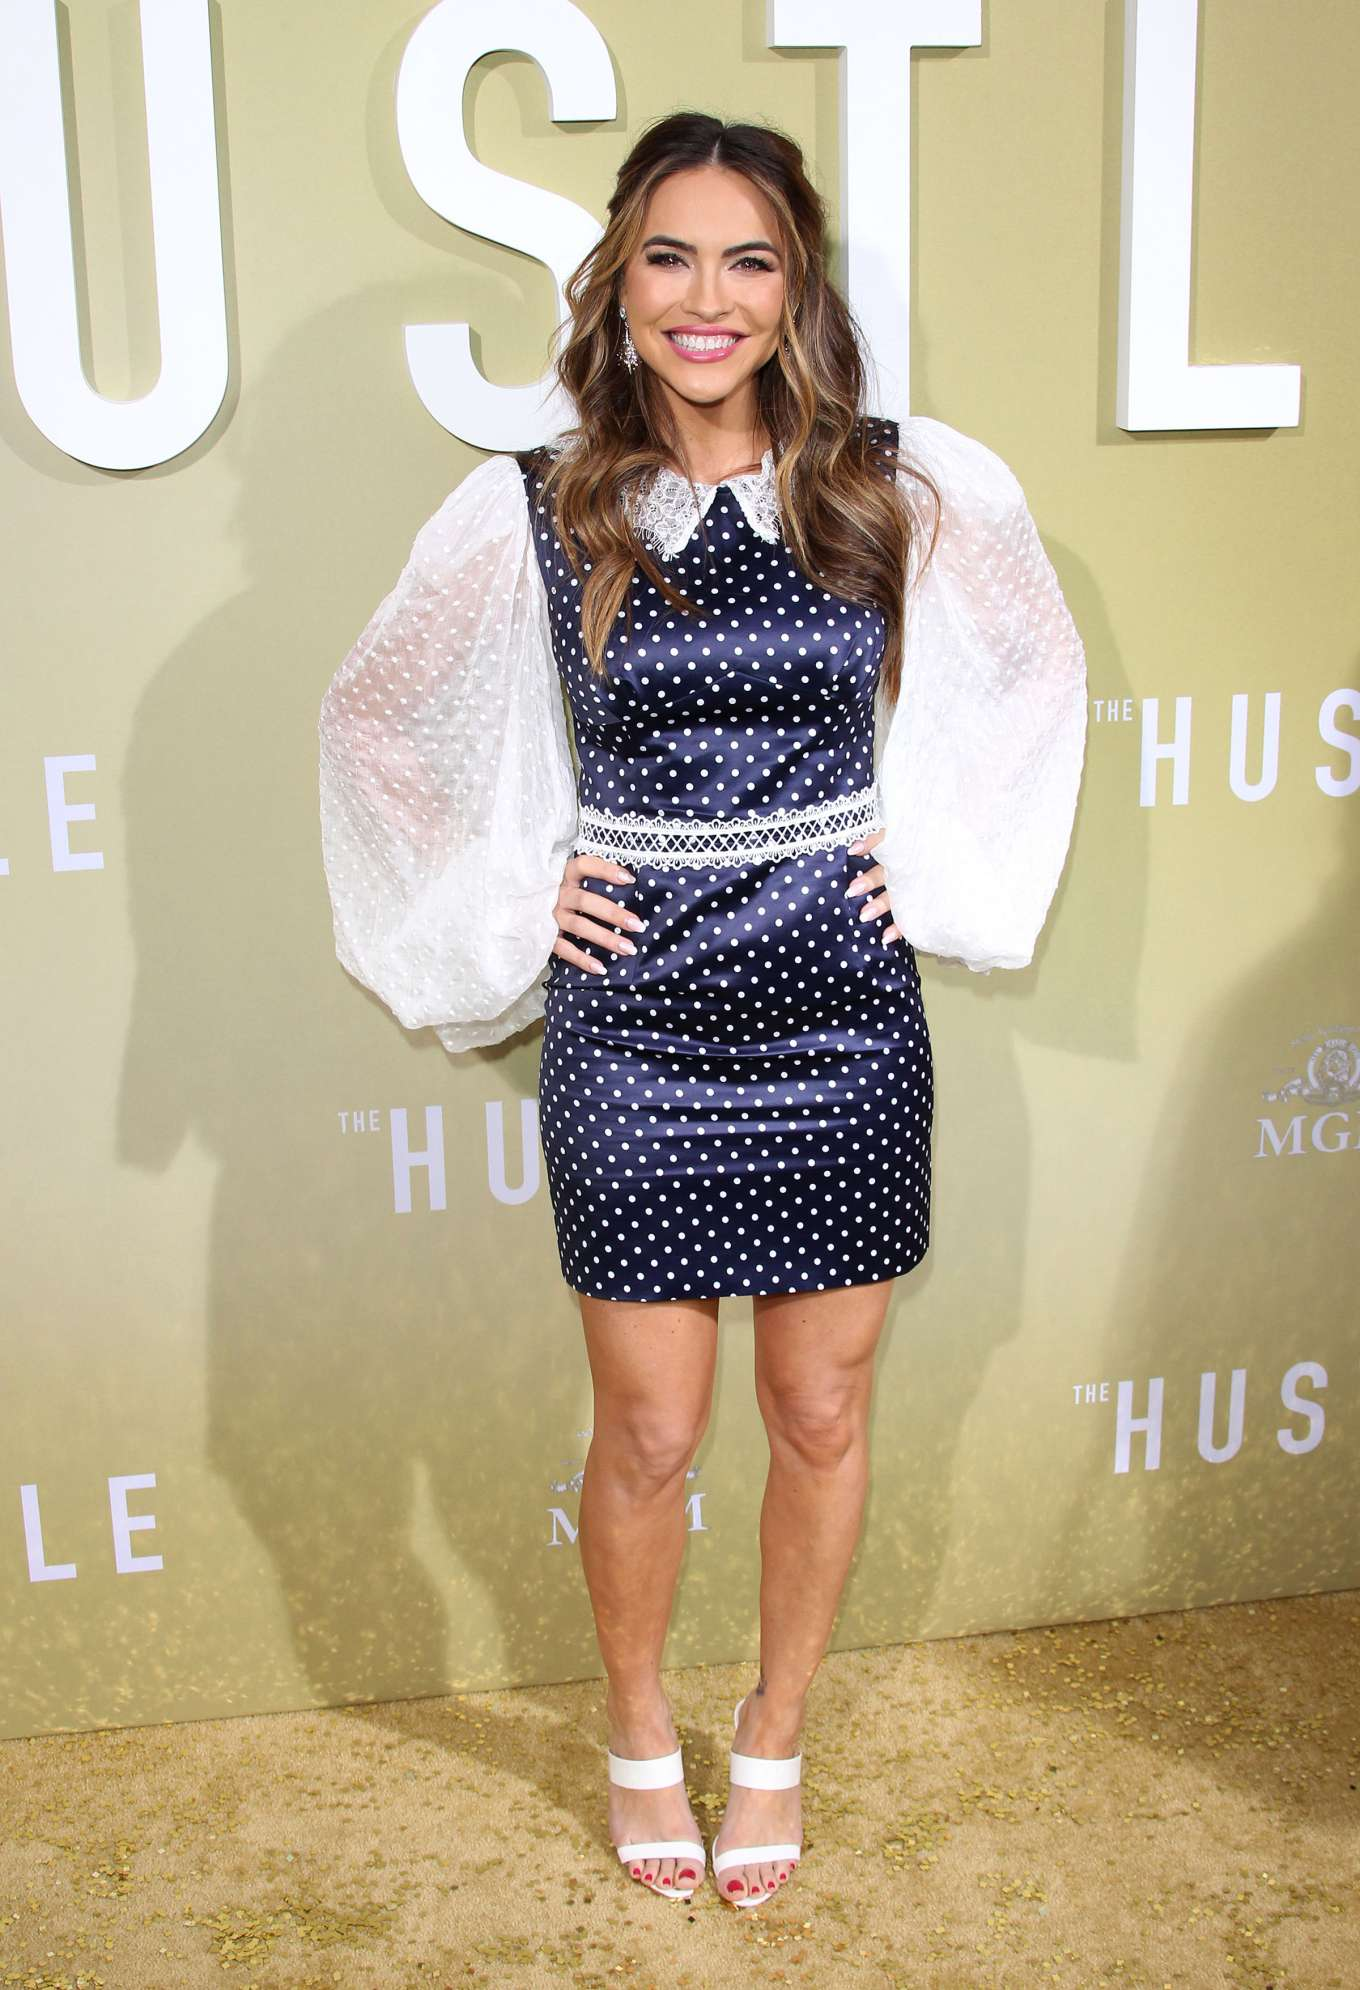 Chrishell Hartley - 'The Hustle' Premiere in Los Angeles